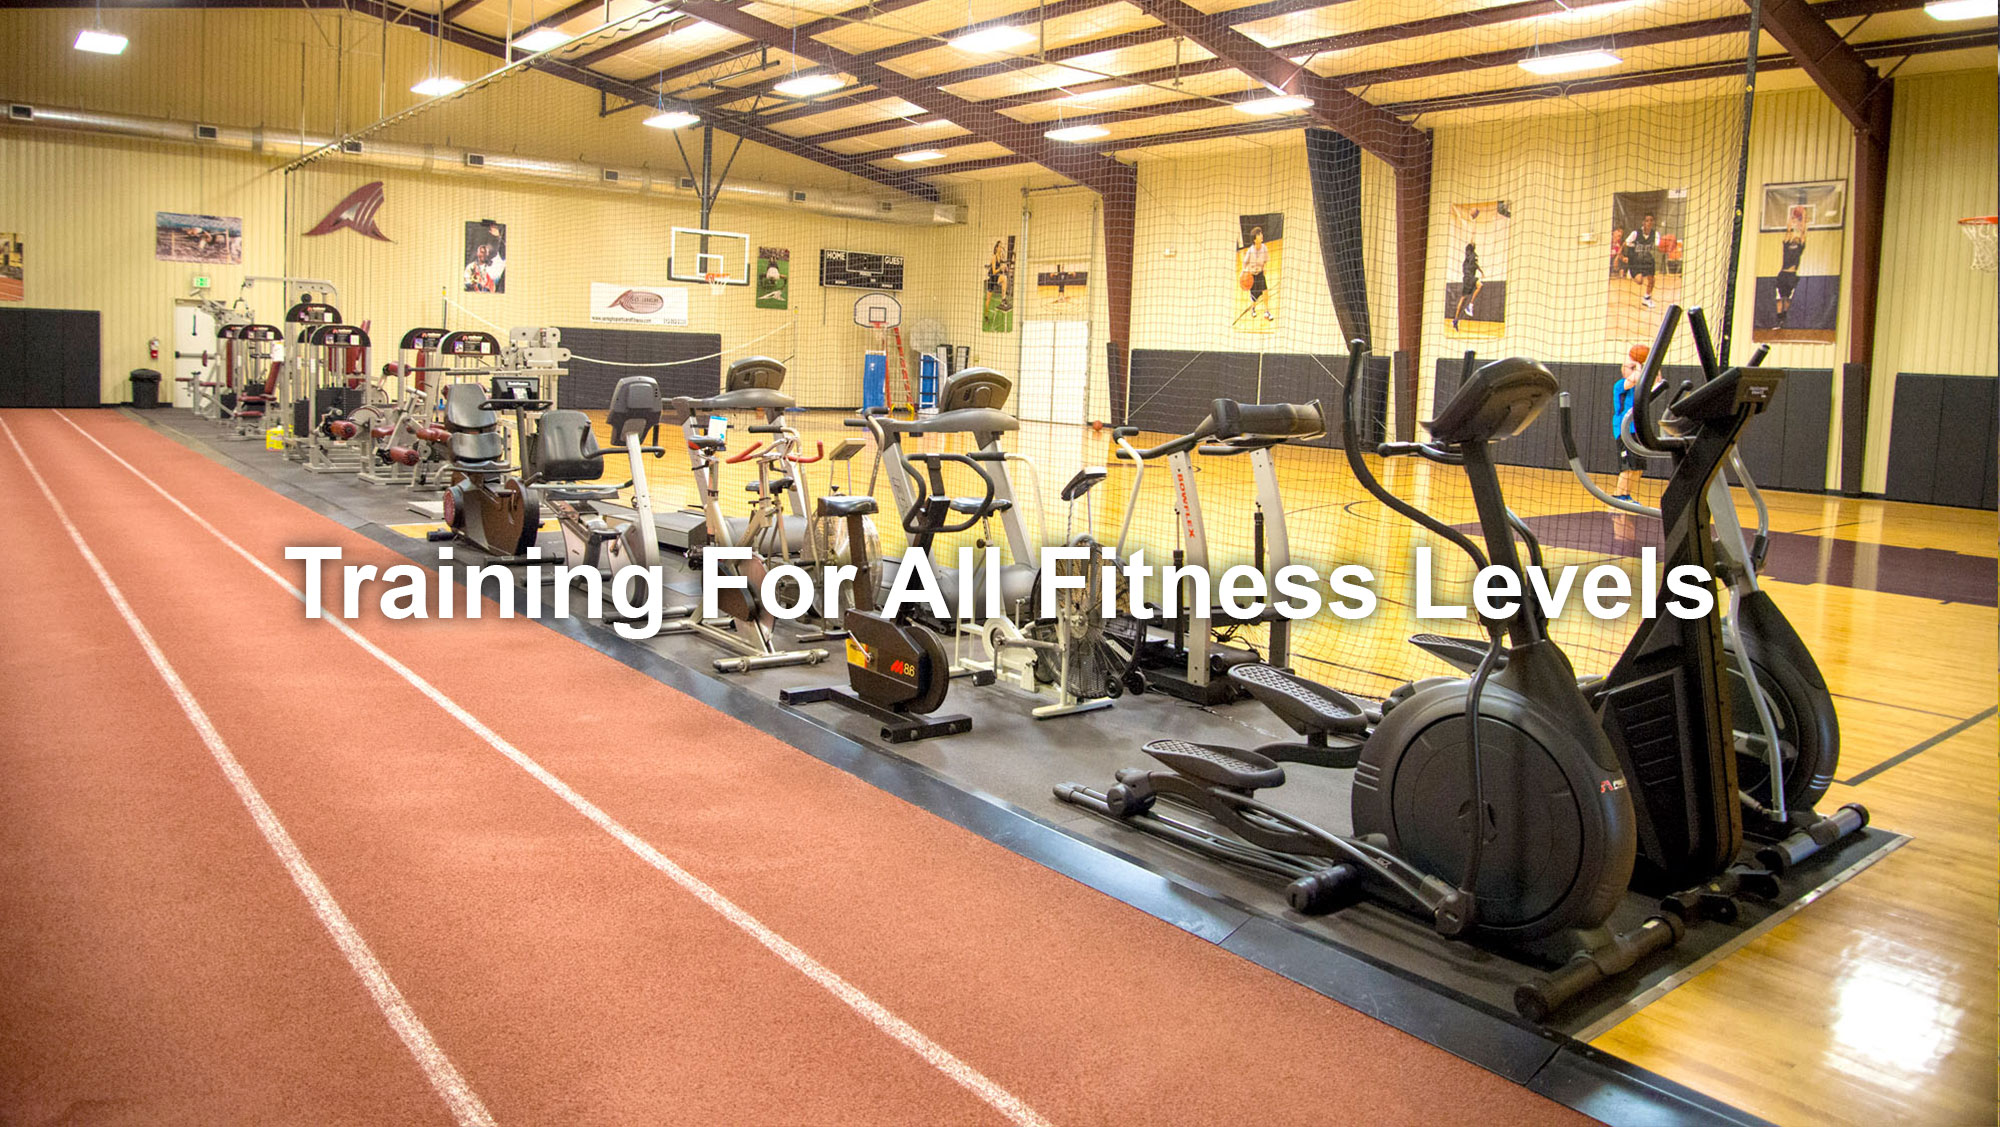 Training for All Fitness Levels